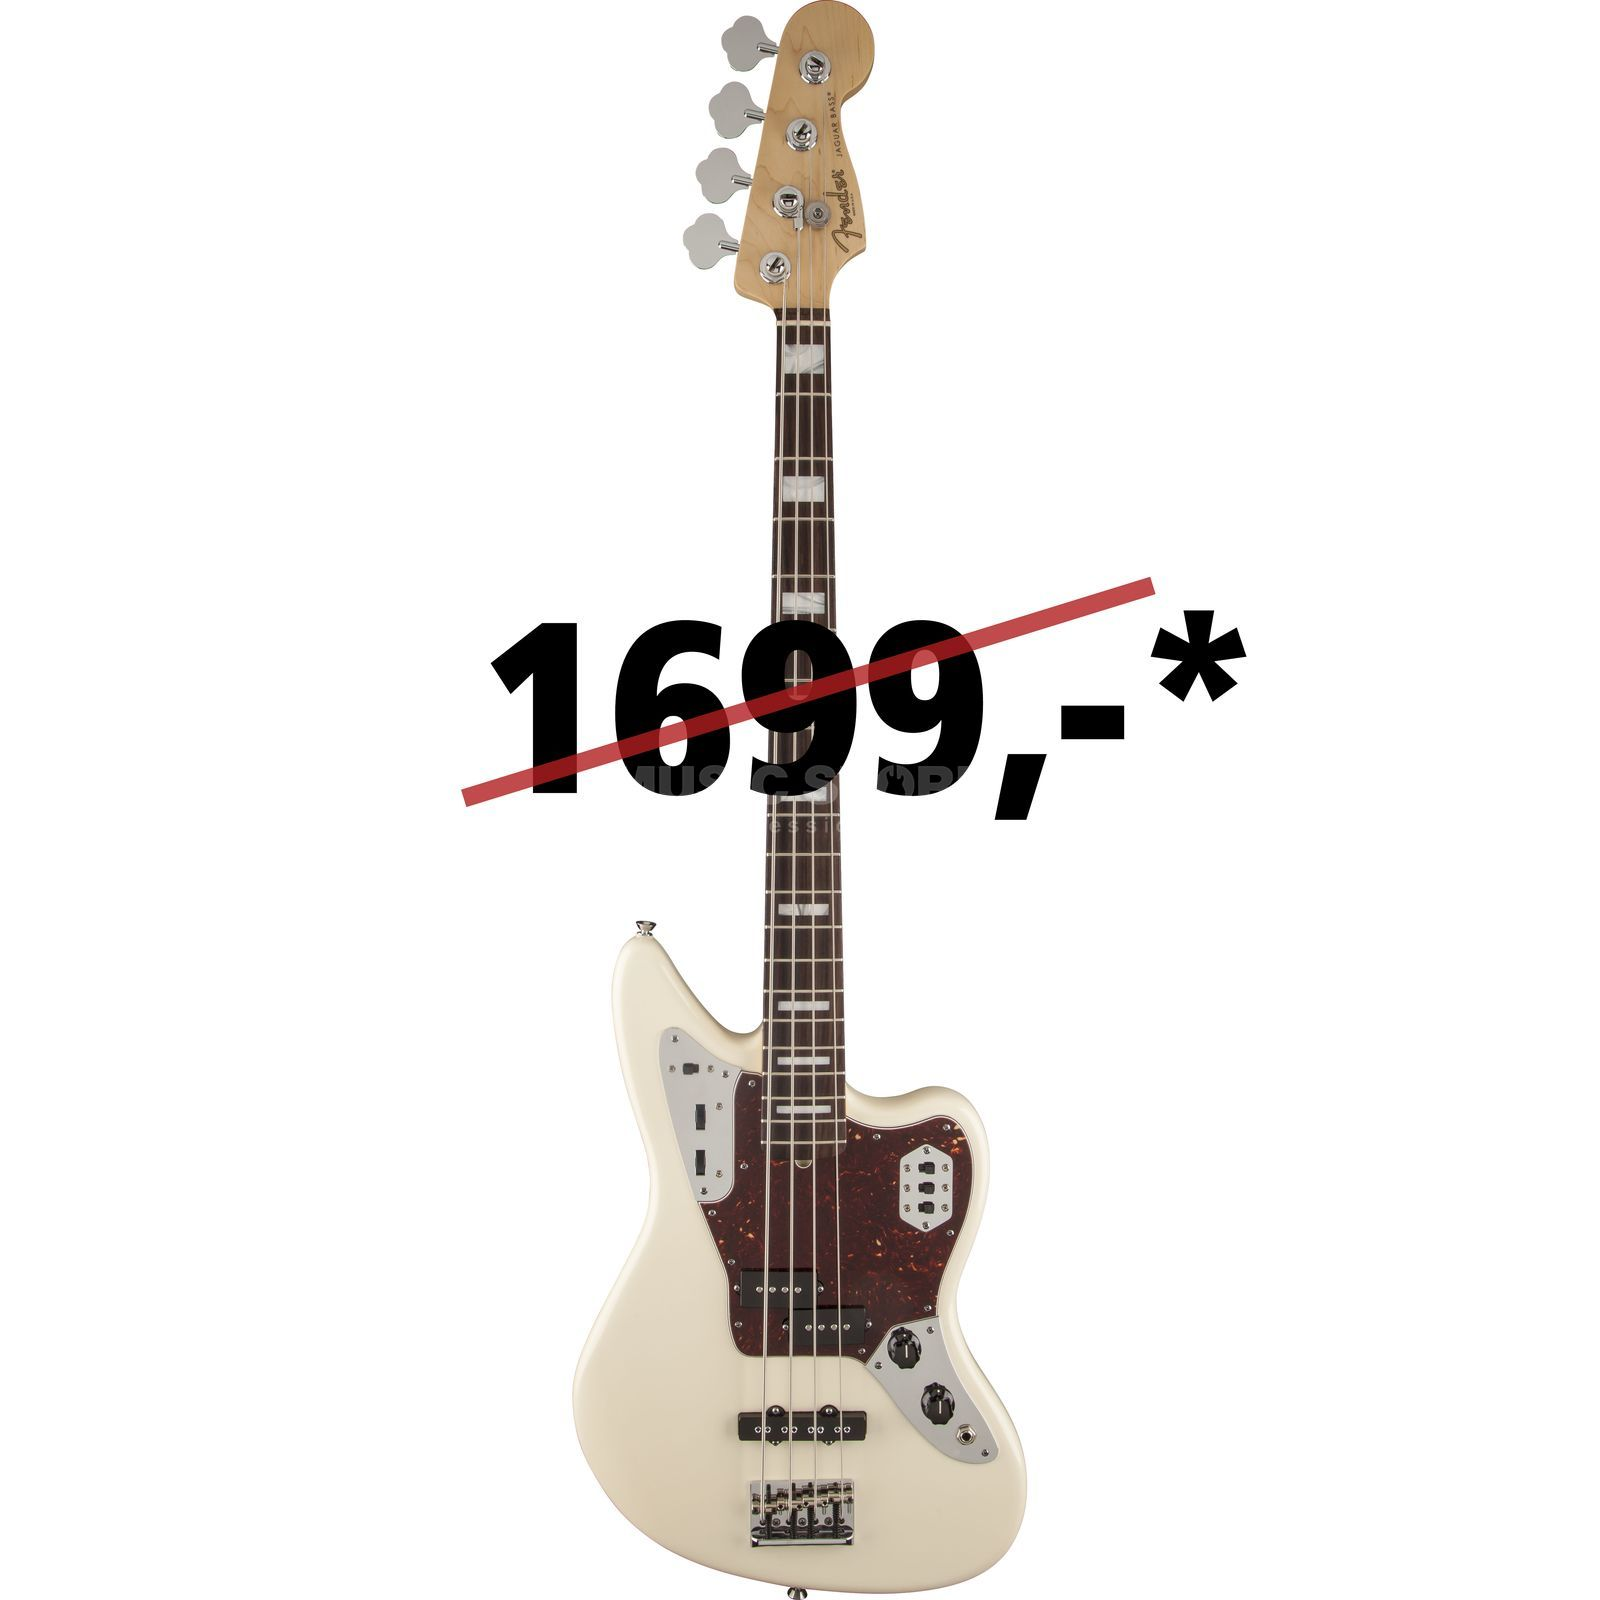 Fender Am. uren Jaguar bas RW OWH Olympic wit Productafbeelding